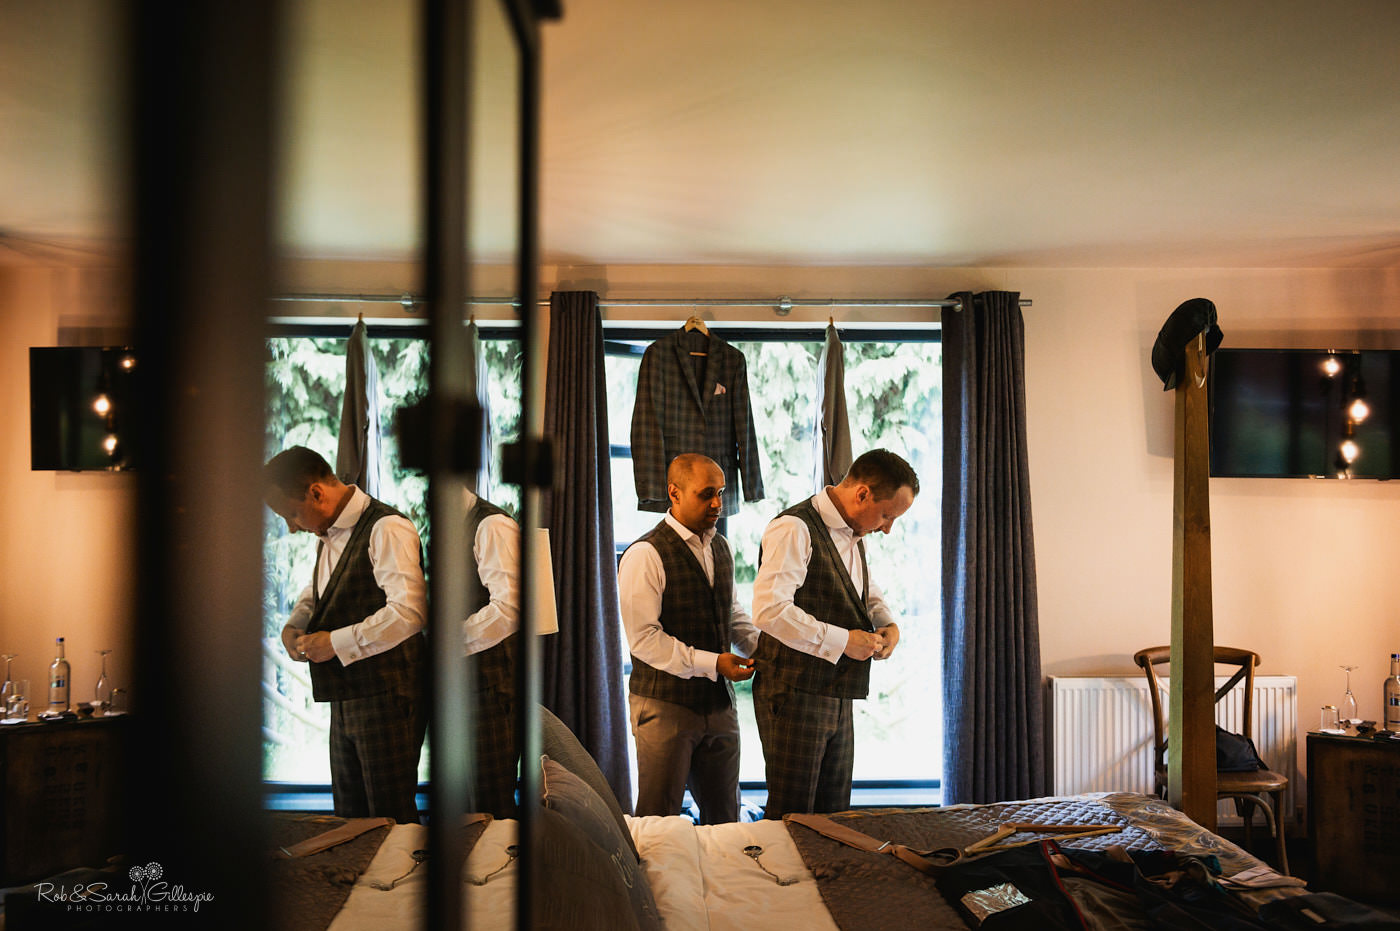 Groom and friends prepare for wedding at The Mill Barns